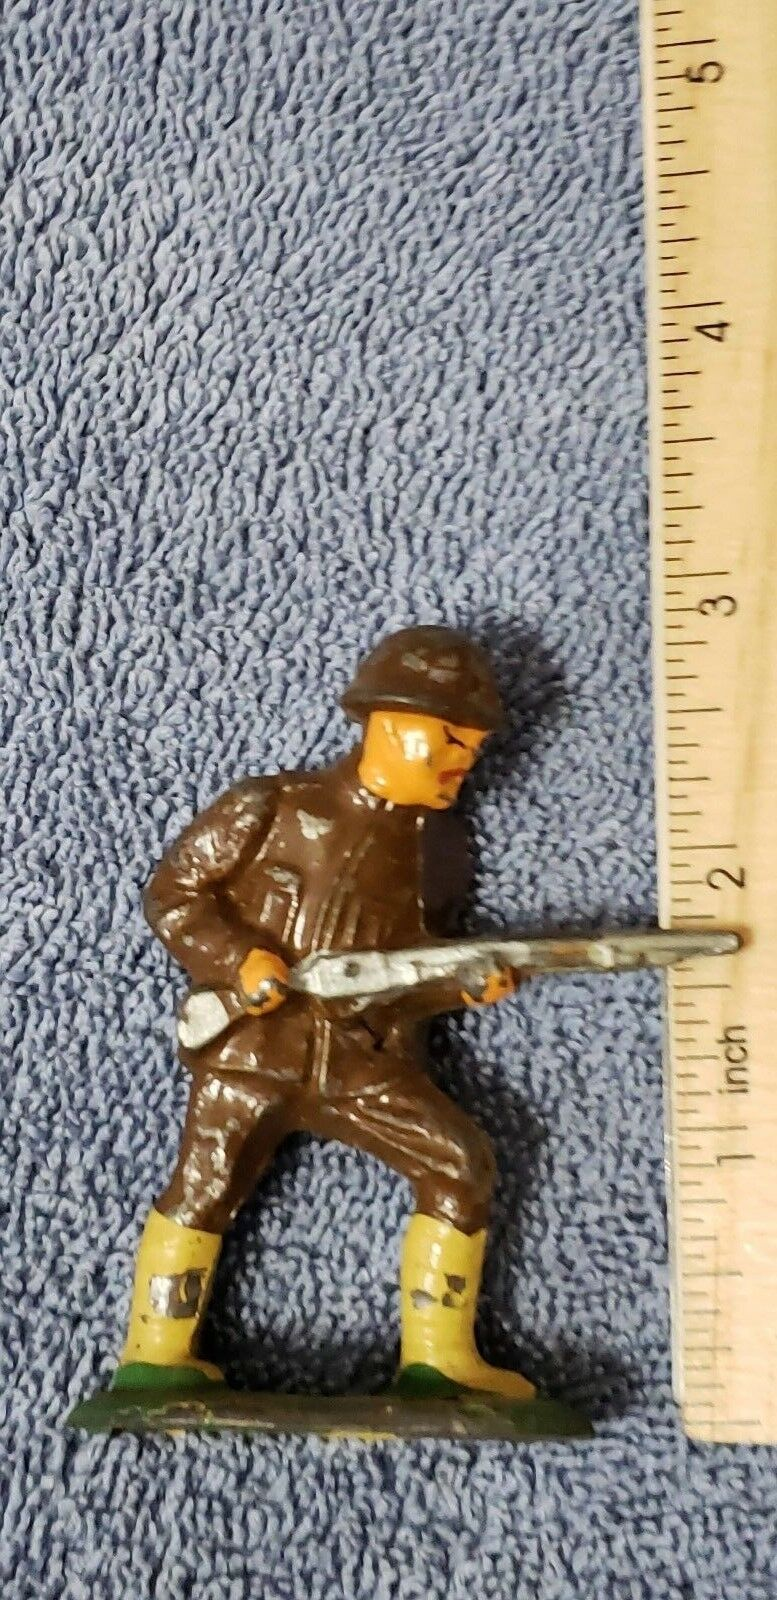 Vintage Barclay B43 Japanese Soldier Charging w rifle lead toy B-043 Manoil